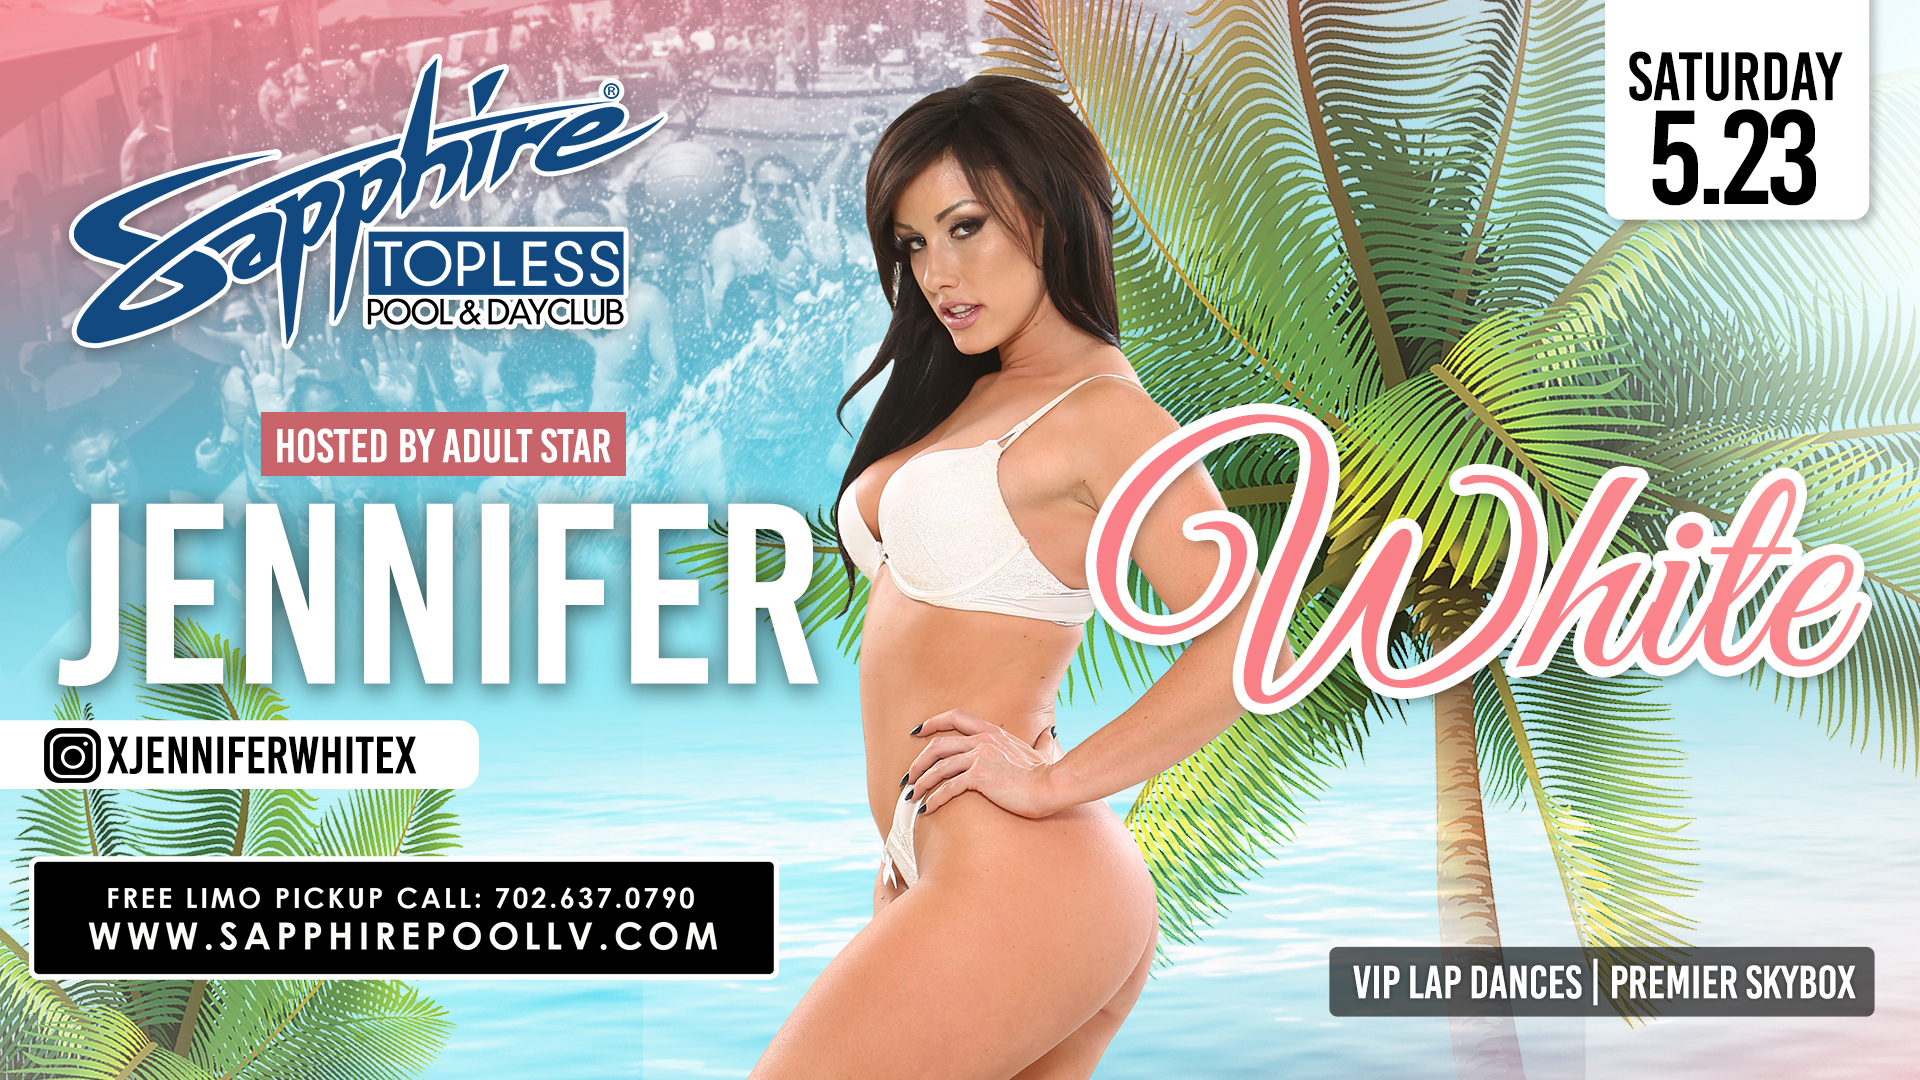 Adult Star Jennifer White Hosts Sapphire Topless Pool and Dayclub Saturday, May 23rd